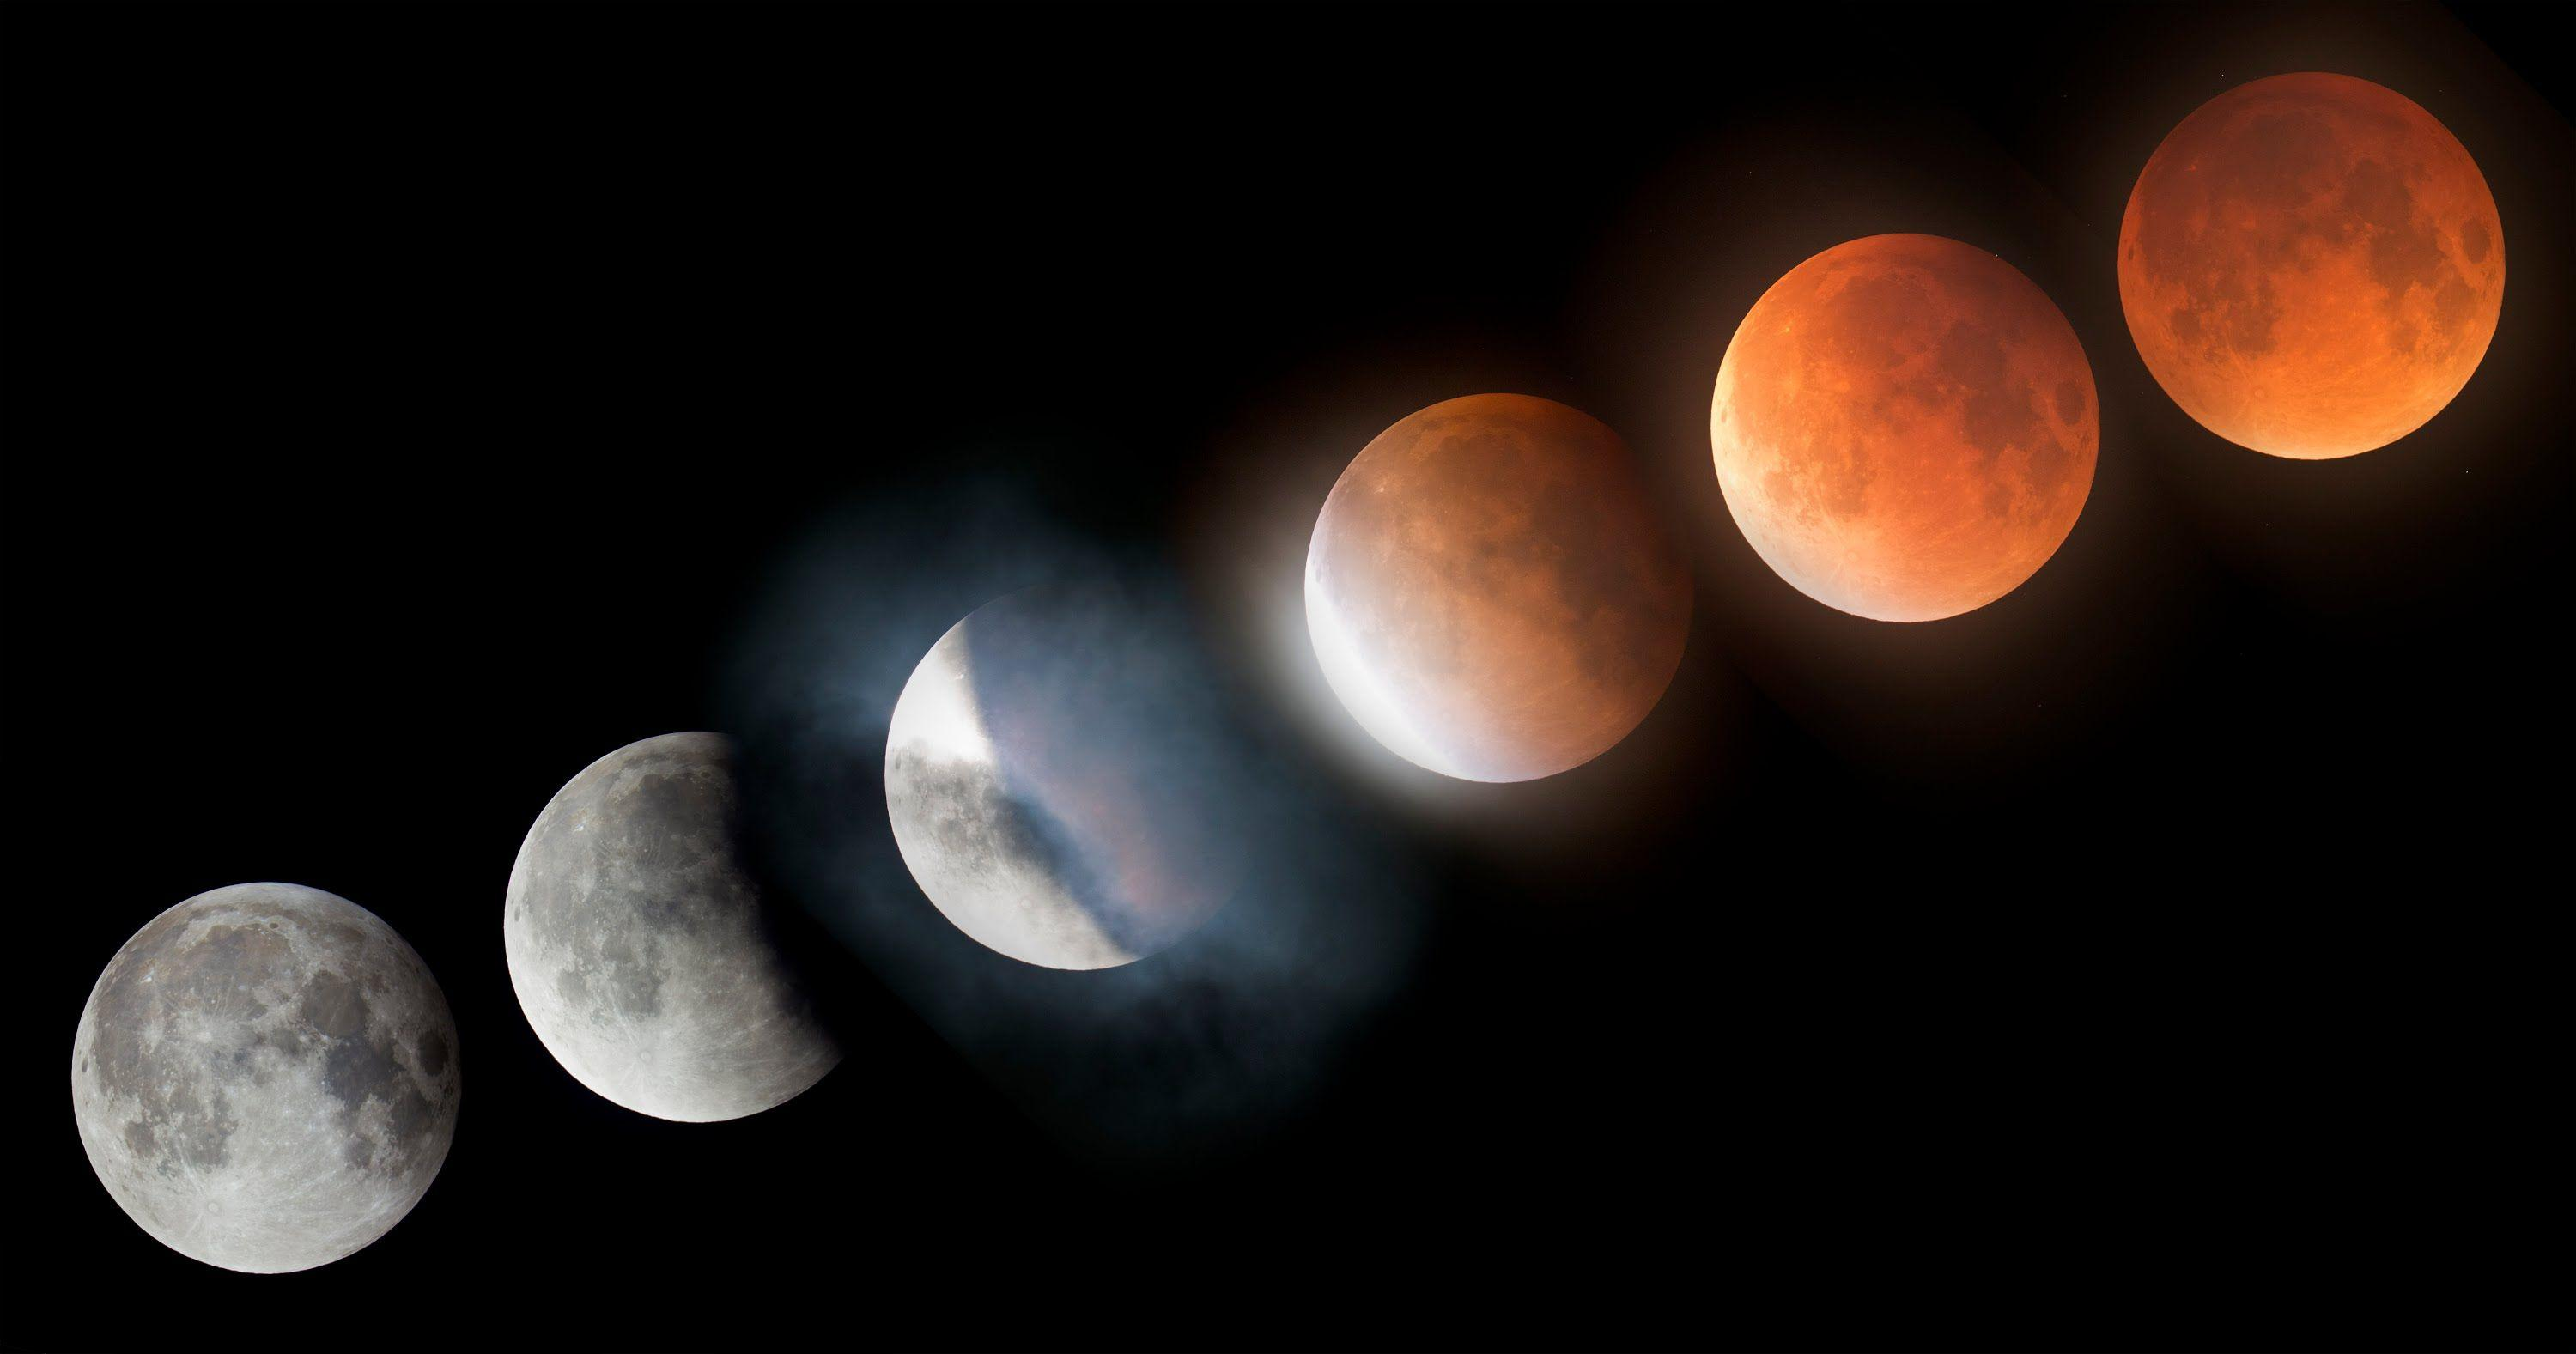 Super Blood Moon Lunar Eclipse Time-lapse 4K - YouTube